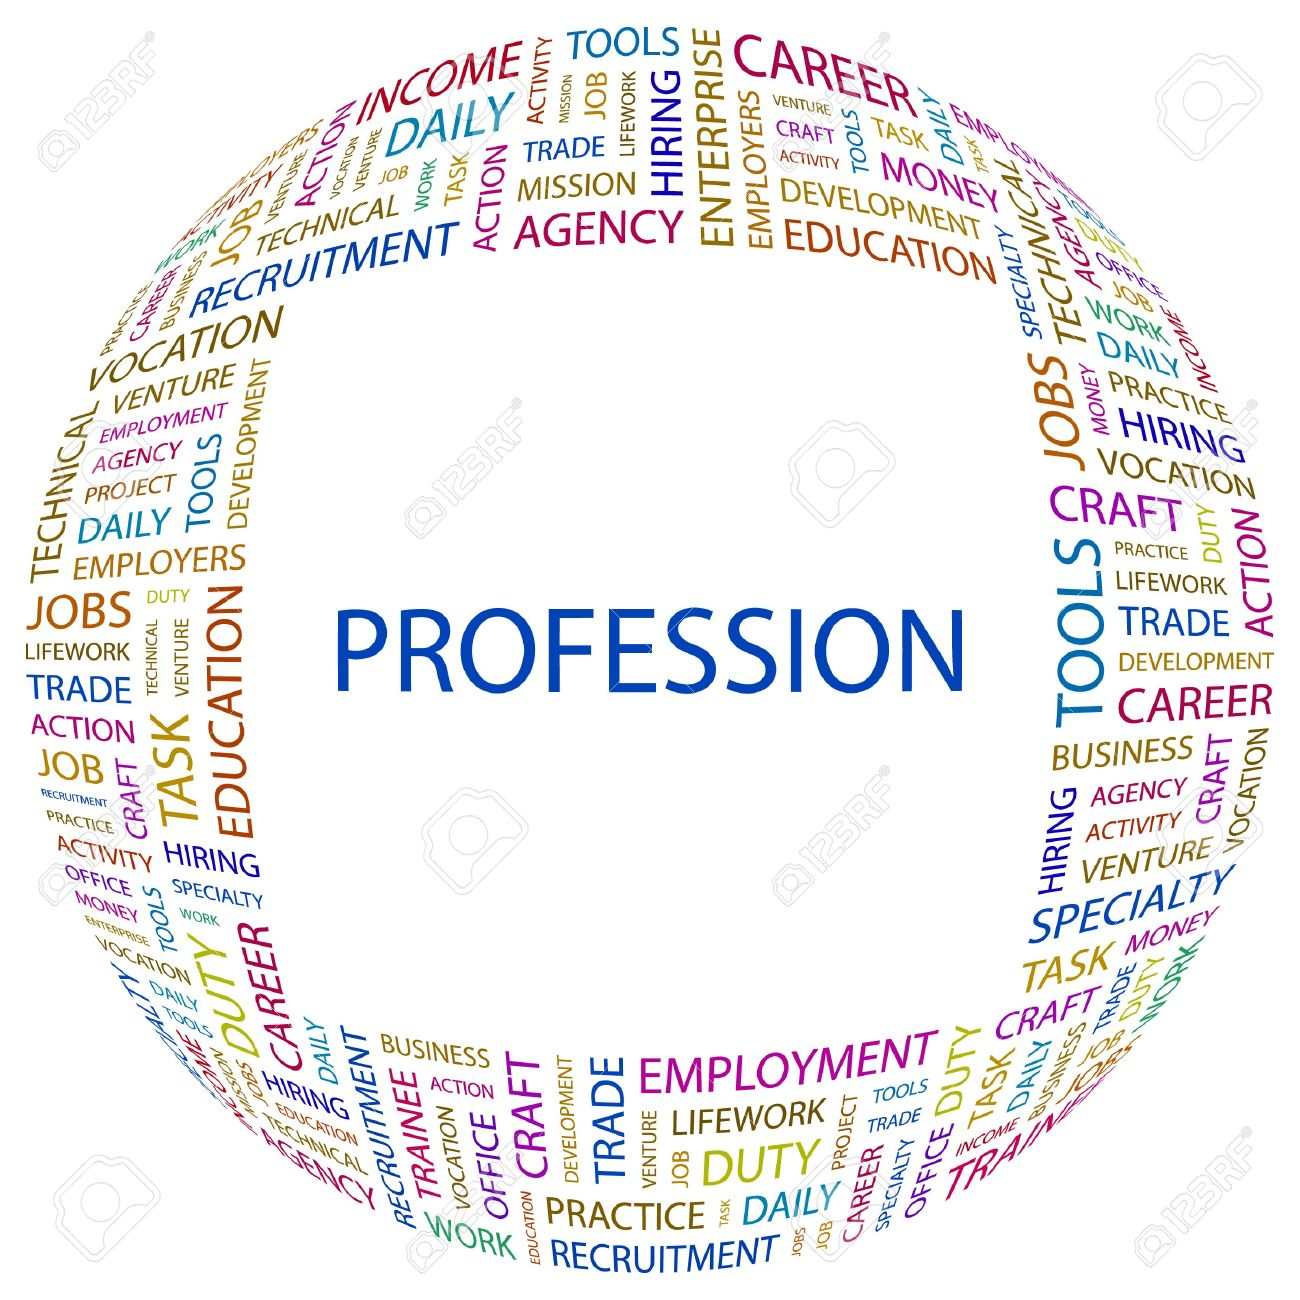 sumber: http://previews.123rf.com/images/studiom1/studiom11007/studiom1100700014/7331091-PROFESSION-Word-collage-on-white-background-illustration--Stock-Vector.jpg